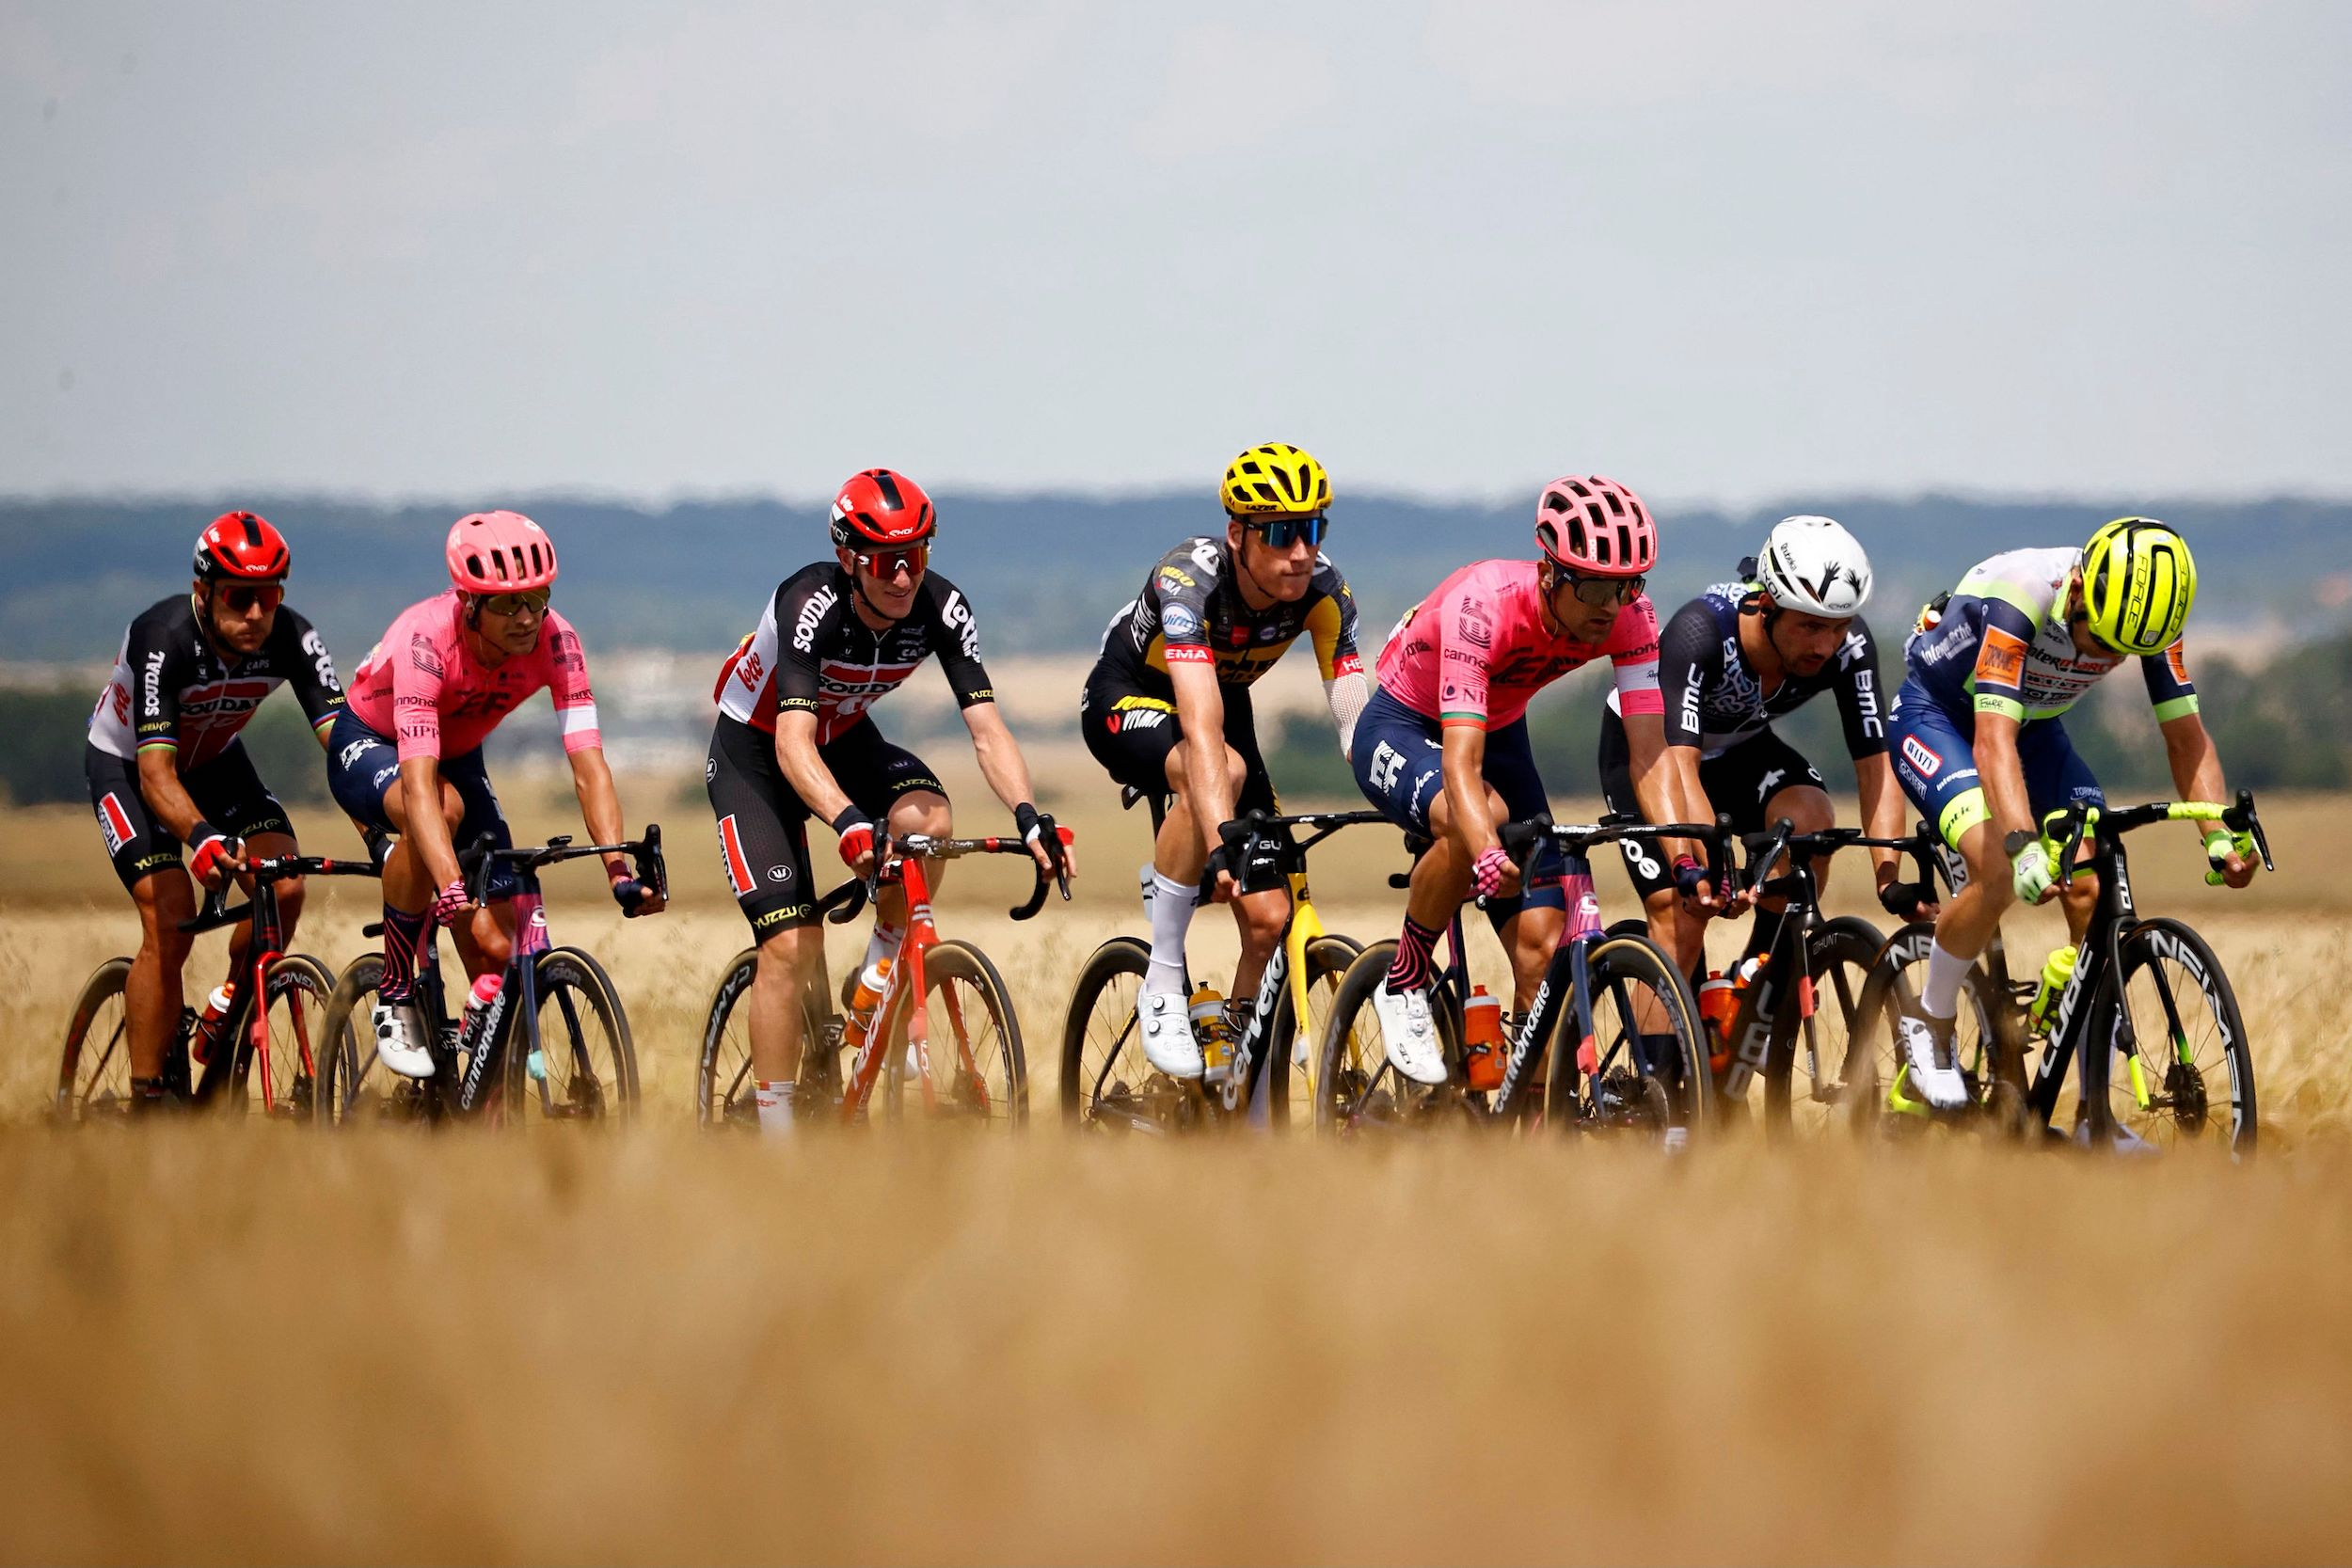 The breakaway power through the flat lands before heading to the first major climbs of the 2021 Tour de France